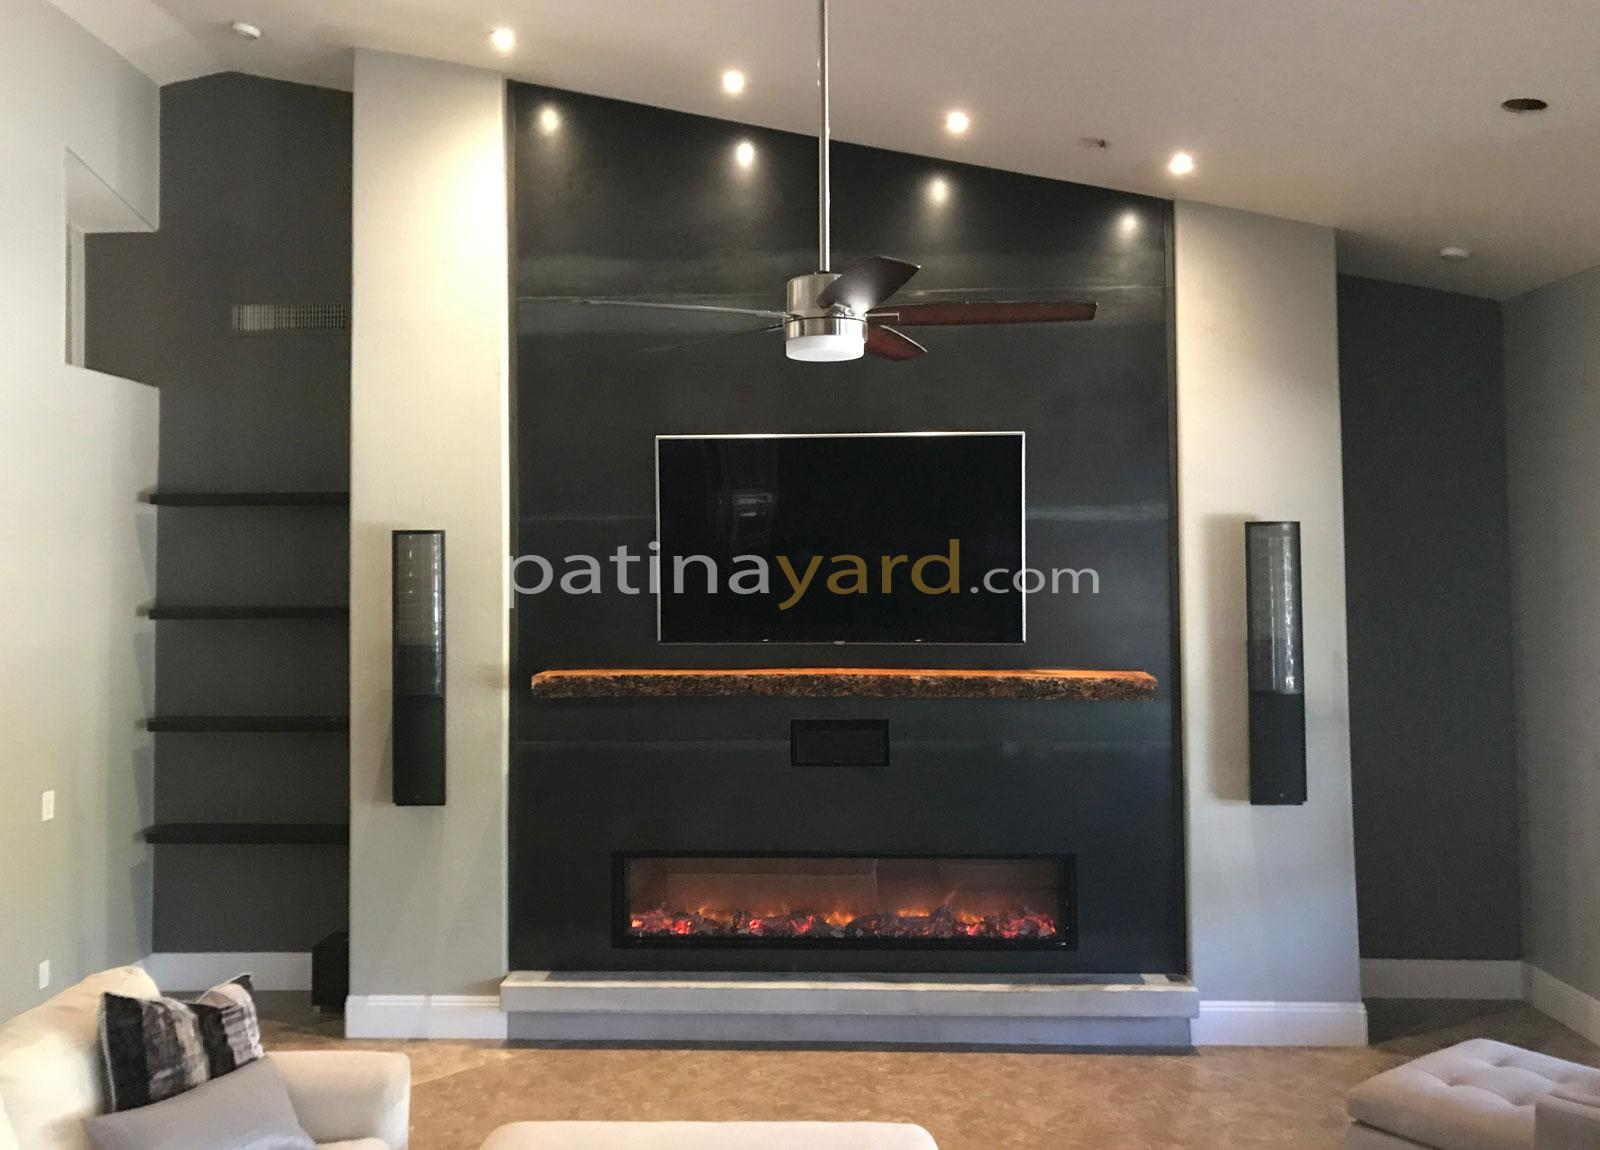 hot rolled steel fireplace with live edge